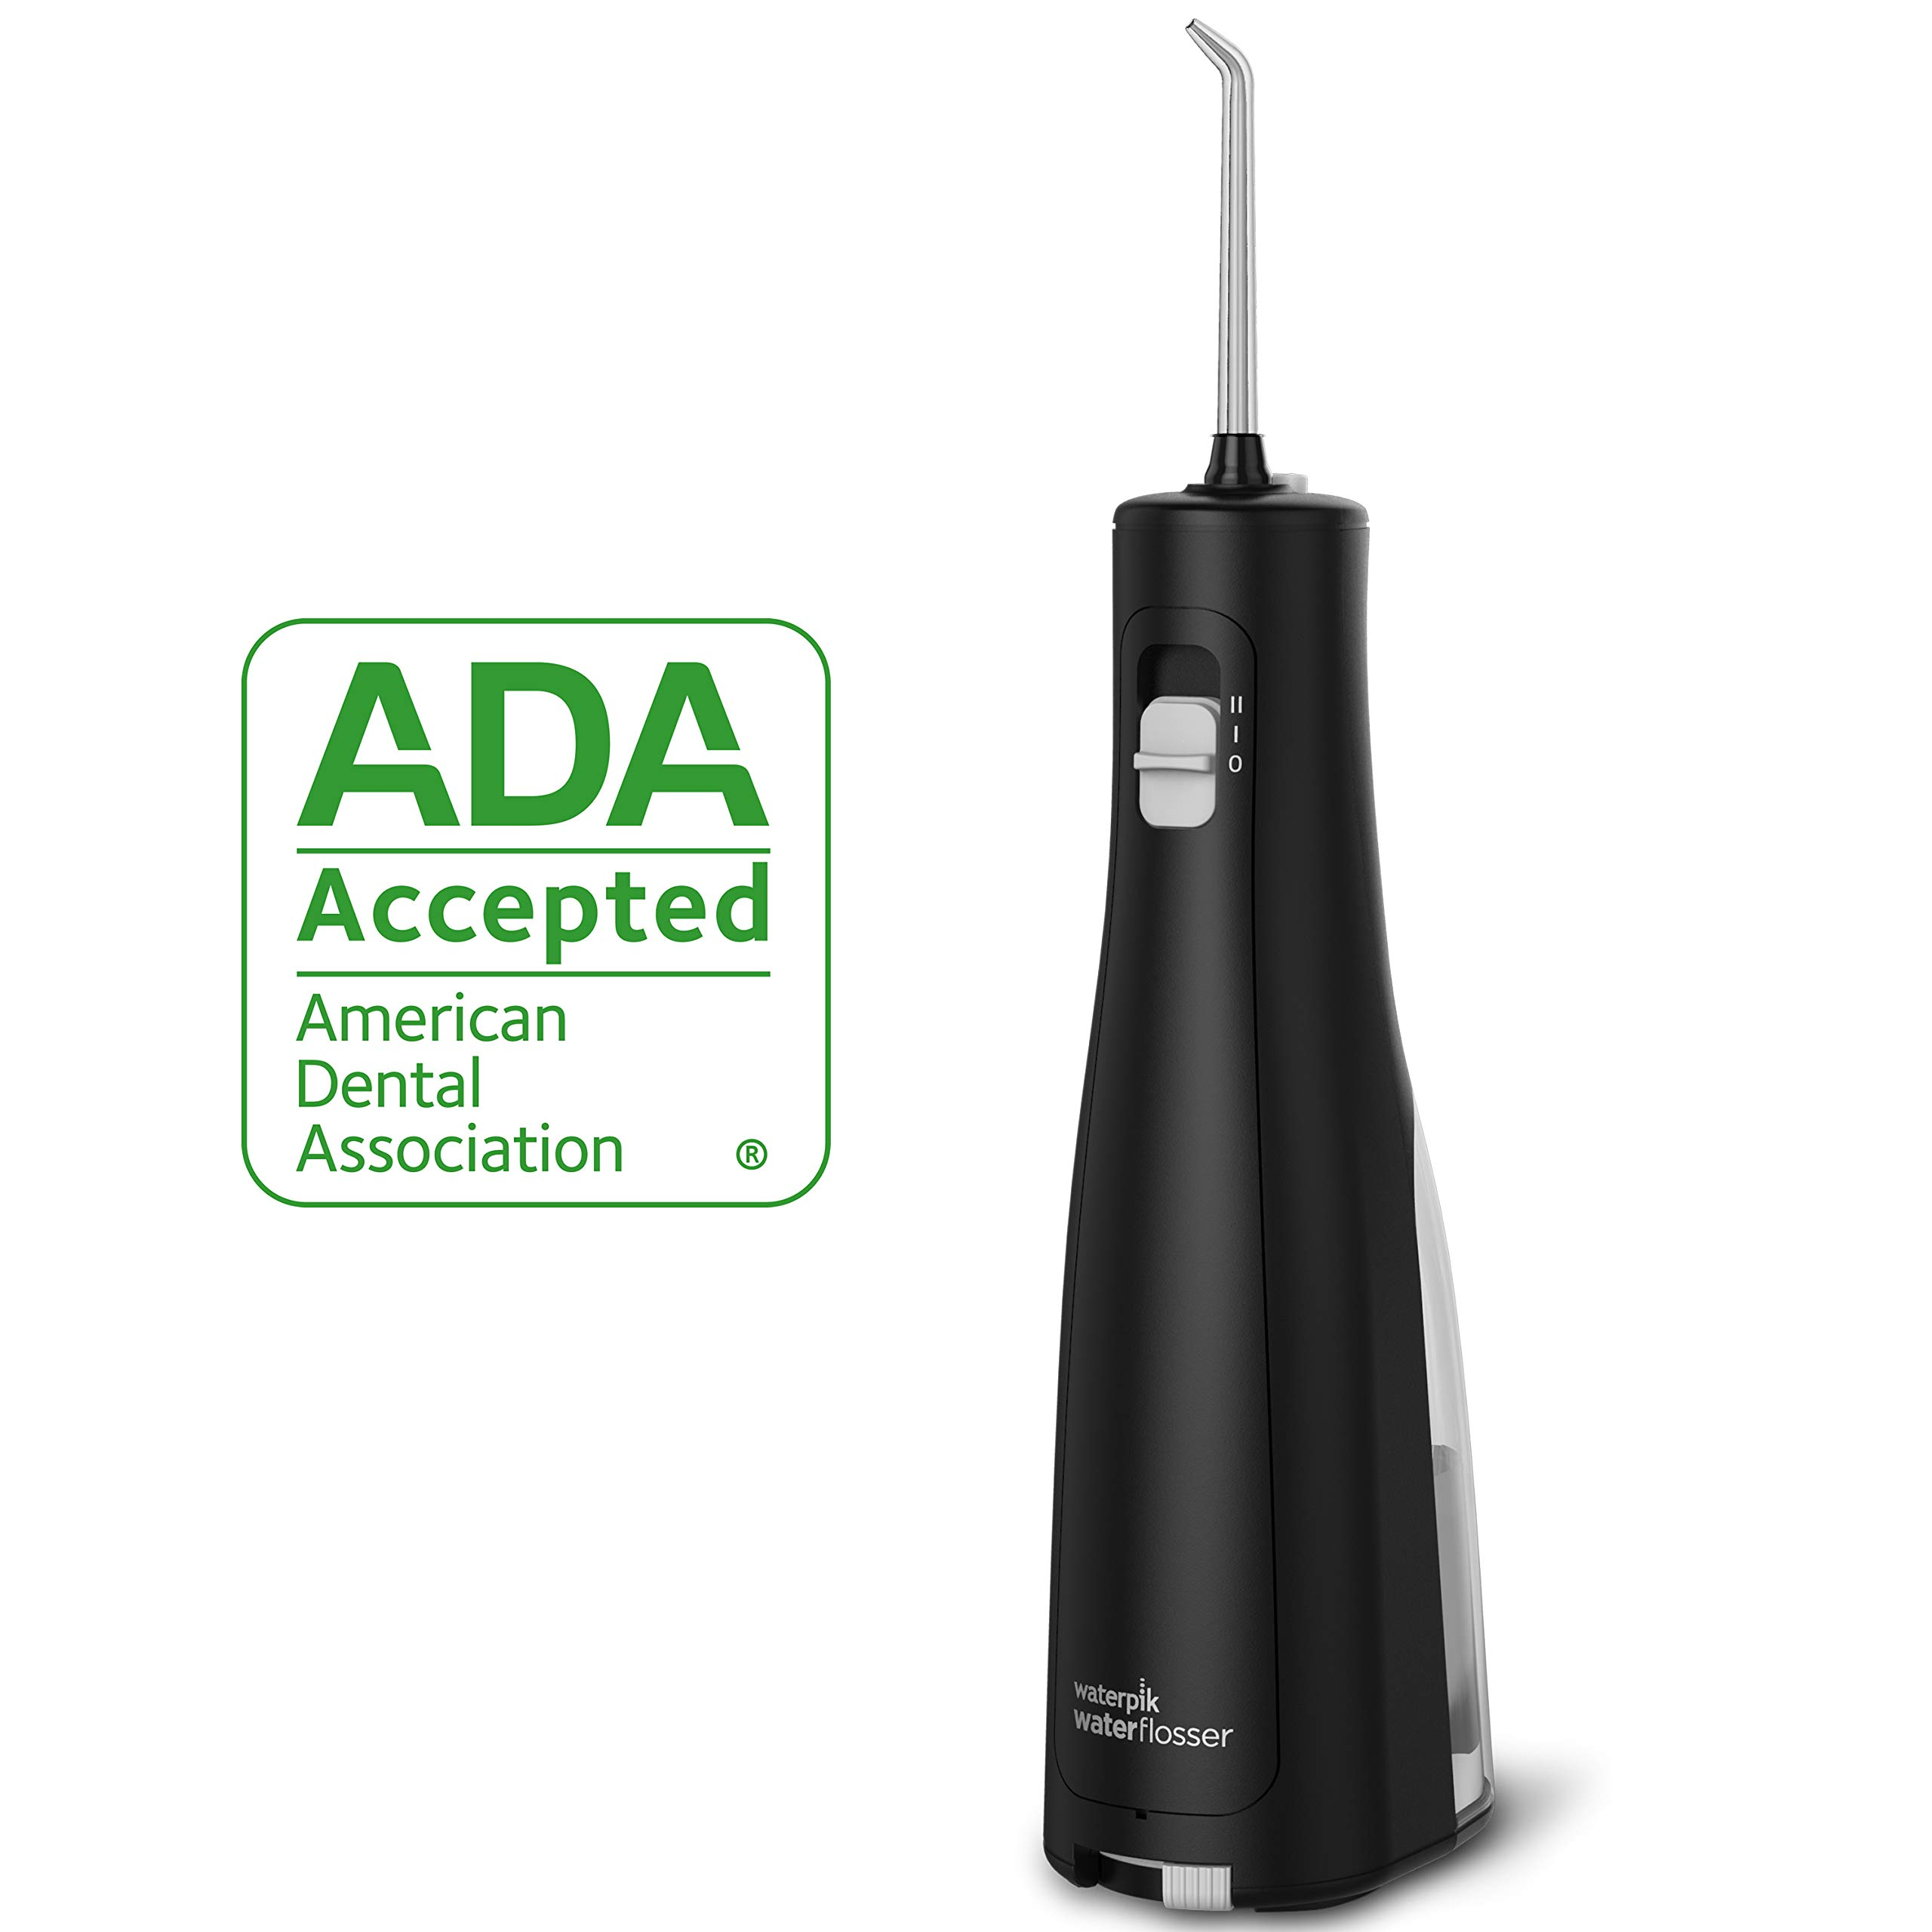 Waterpik Cordless Freedom ADA Accepted Oral Irrigator, Battery Operated & Portable for Travel & Home, WF 03 by Waterpik